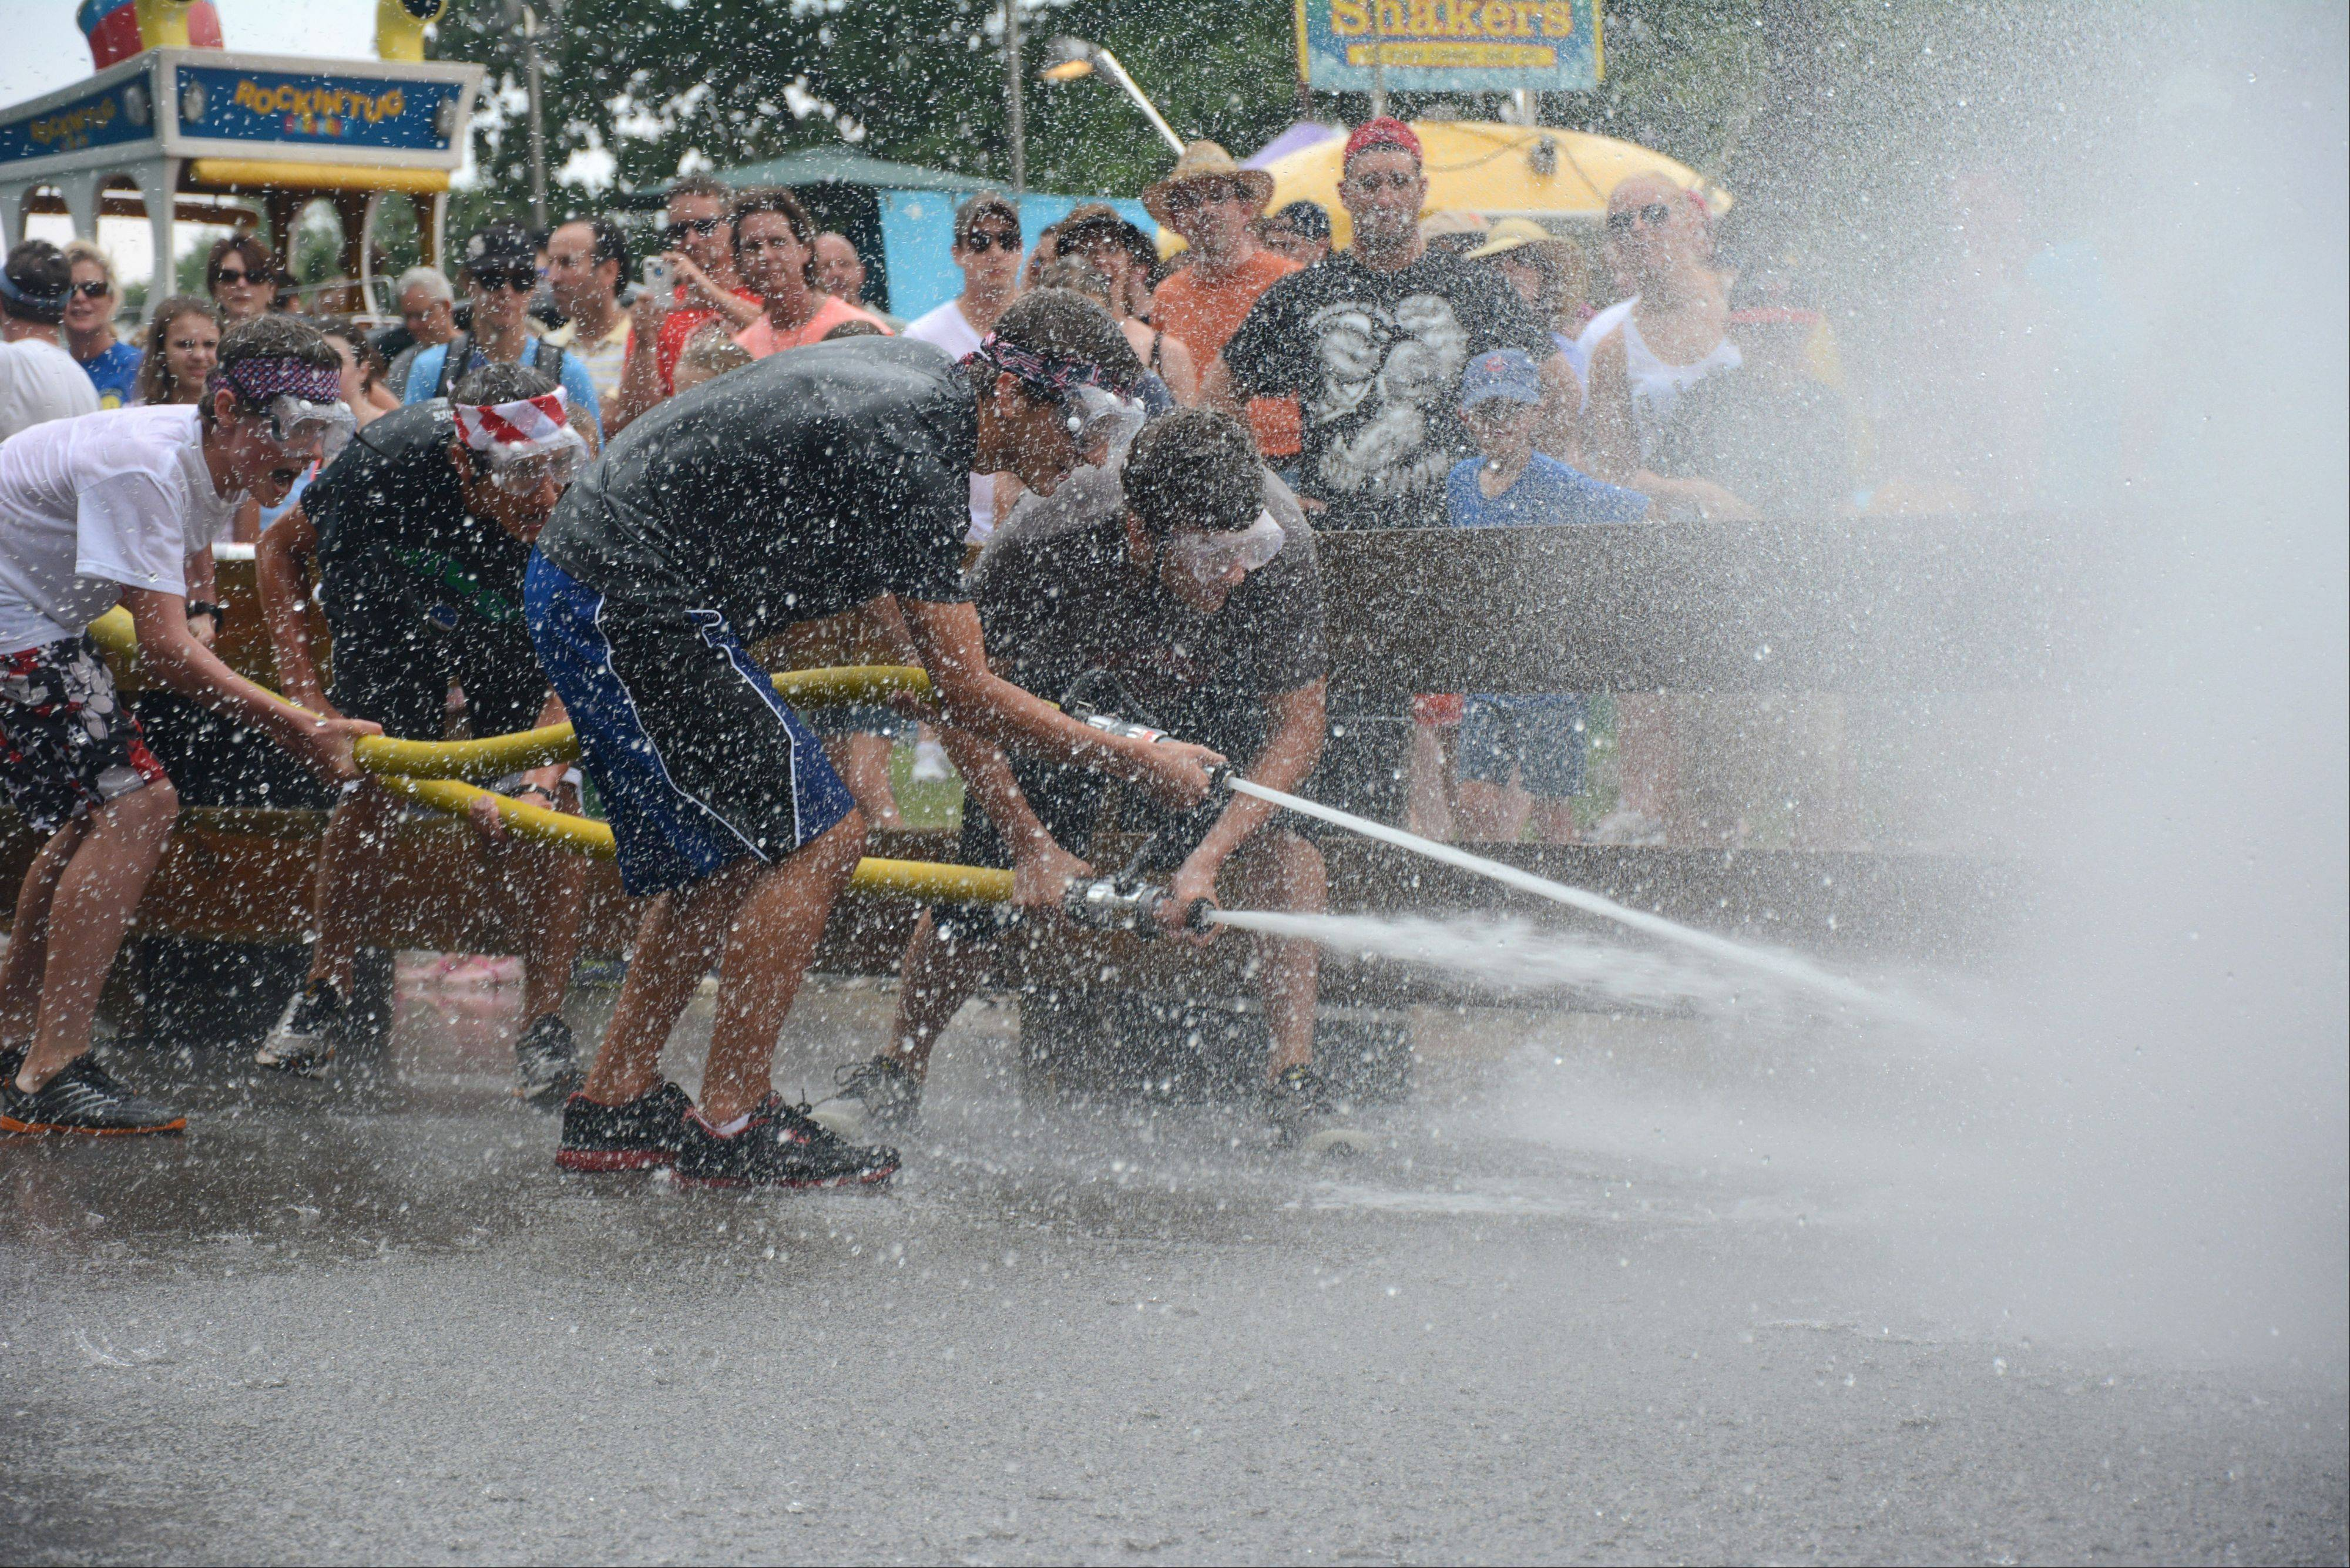 From left, Asher Ginnodo, Sam Gabriel, Nicholas Tuczak and Tyler Culliton, all of Arlington Heights, compete in a water fight Sunday during the final day of Arlington Heights' Frontier Days.